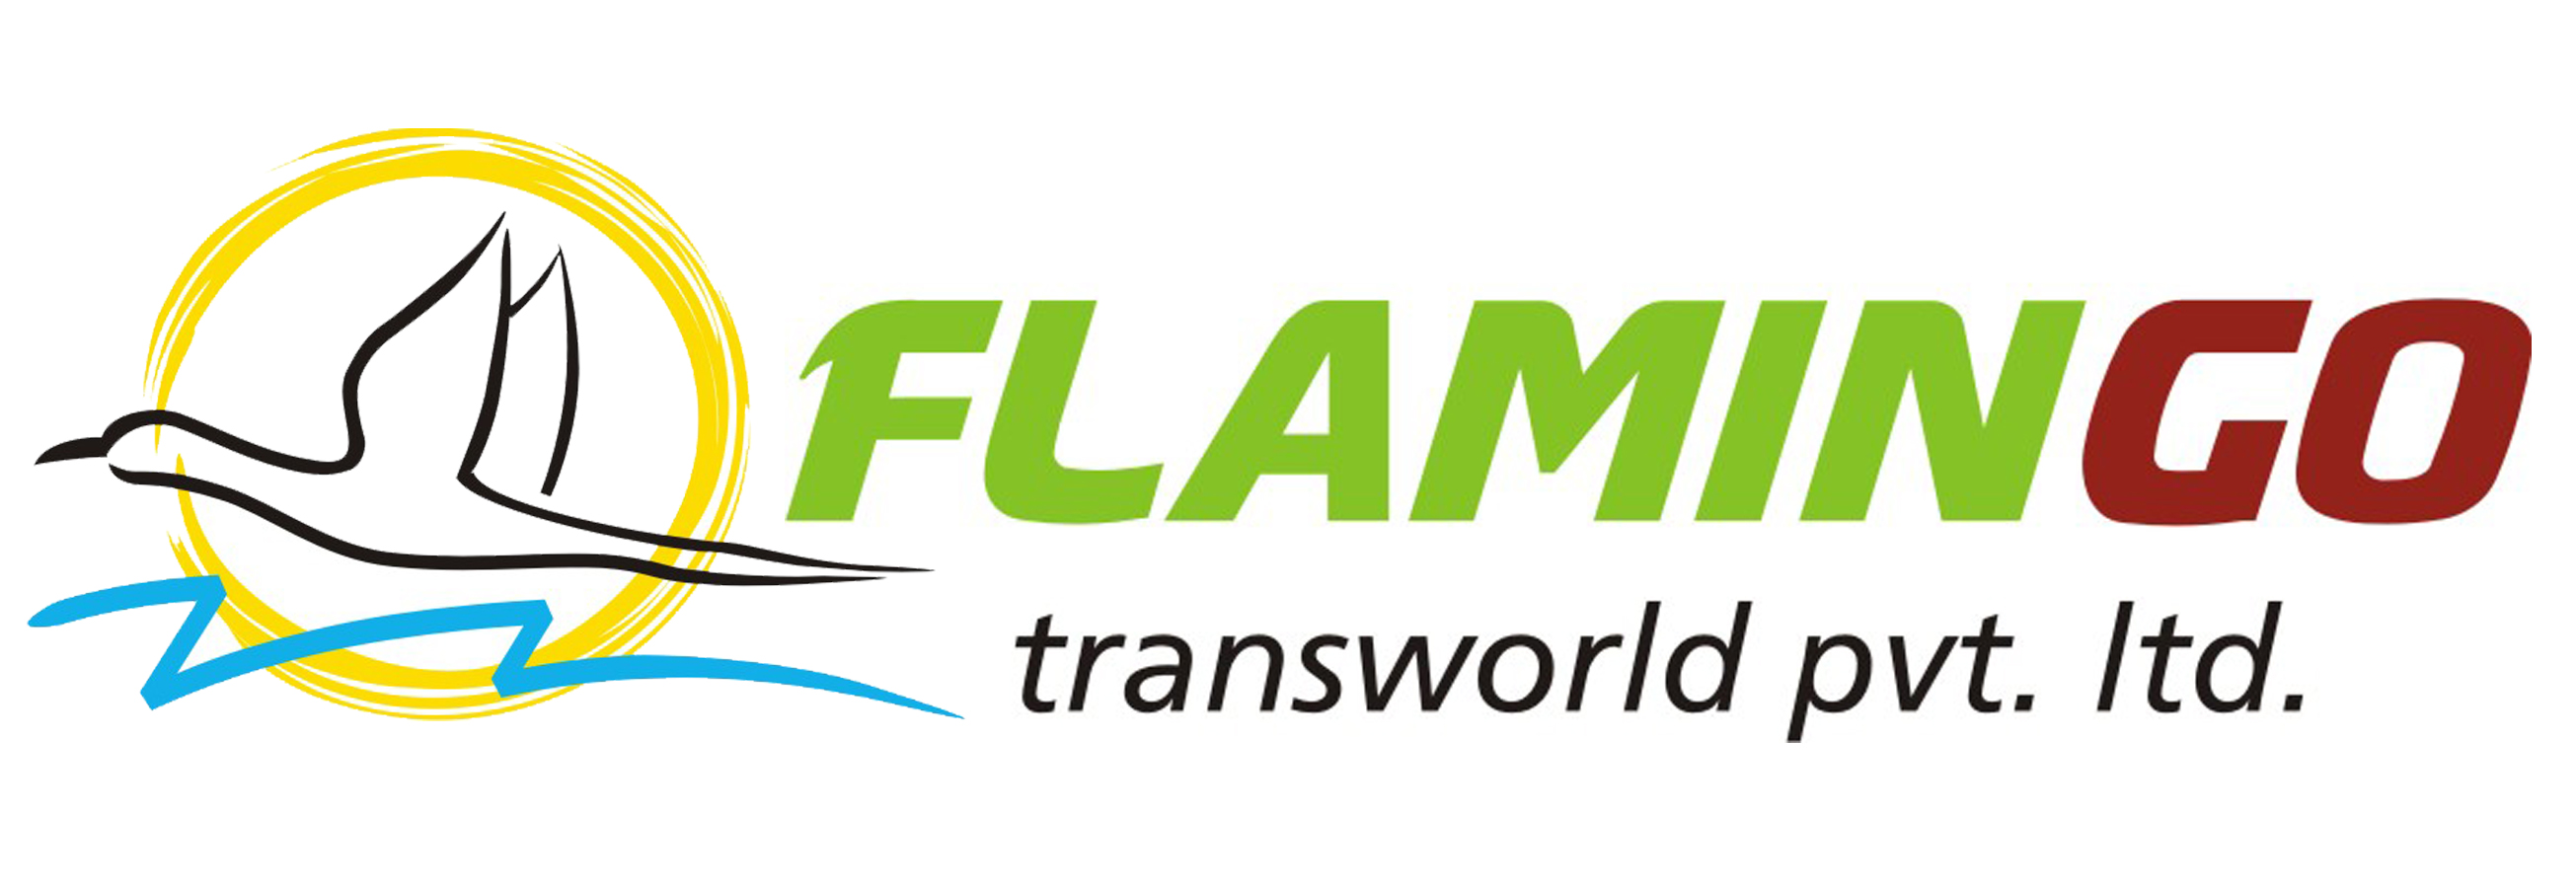 Flamingo-Transworld-Pvt-Ltd